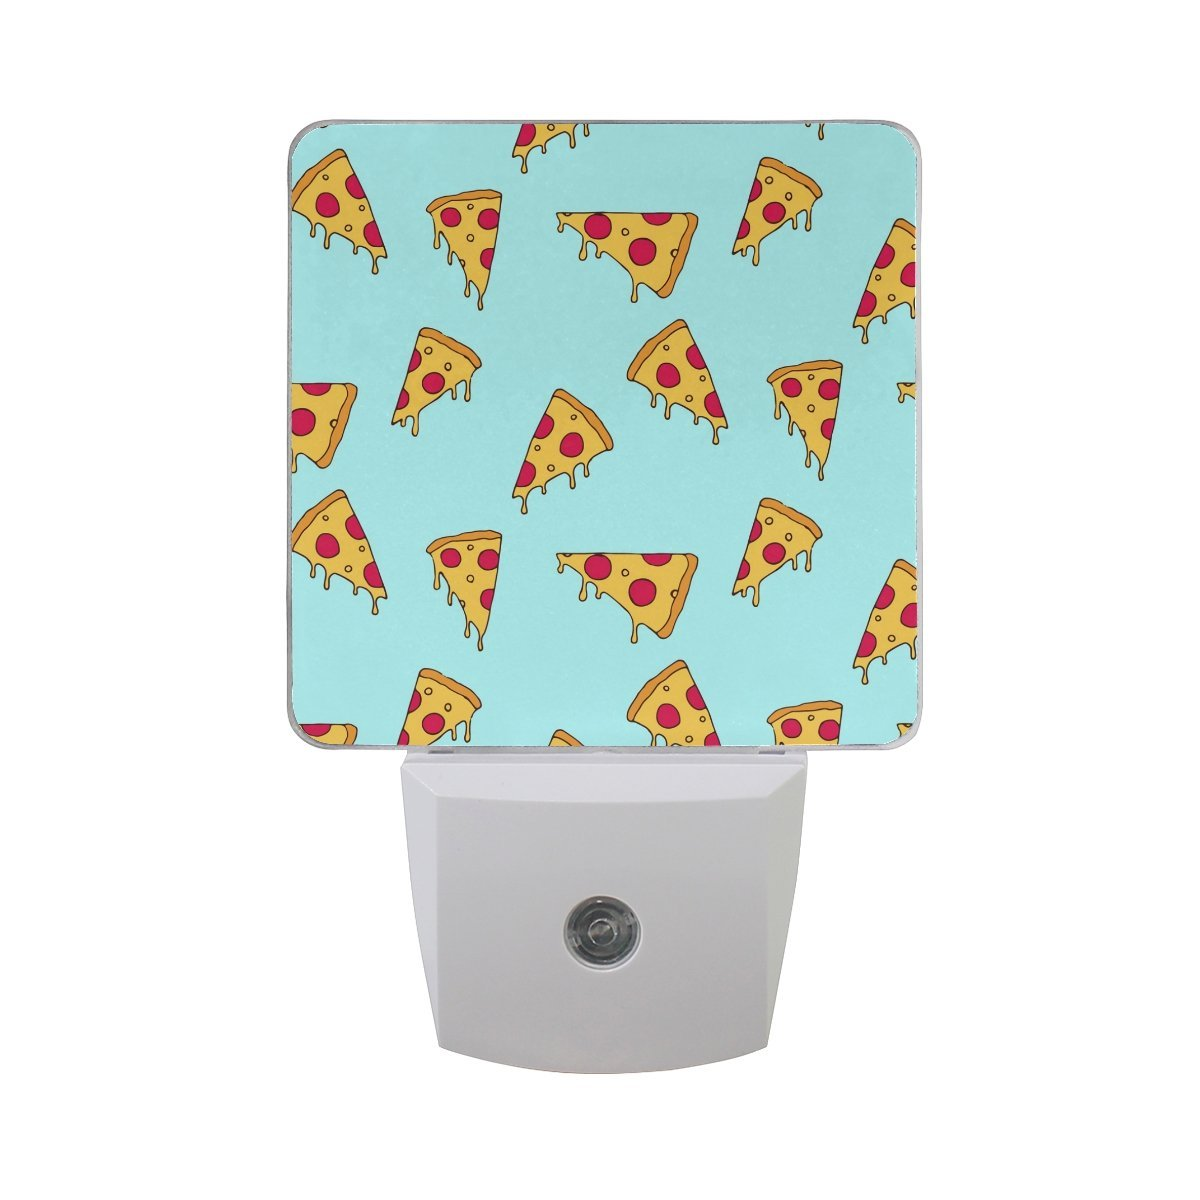 Naanle Set of 2 Pizza Slice Pattern On Blue Background Auto Sensor LED Dusk To Dawn Night Light Plug In Indoor for Adults